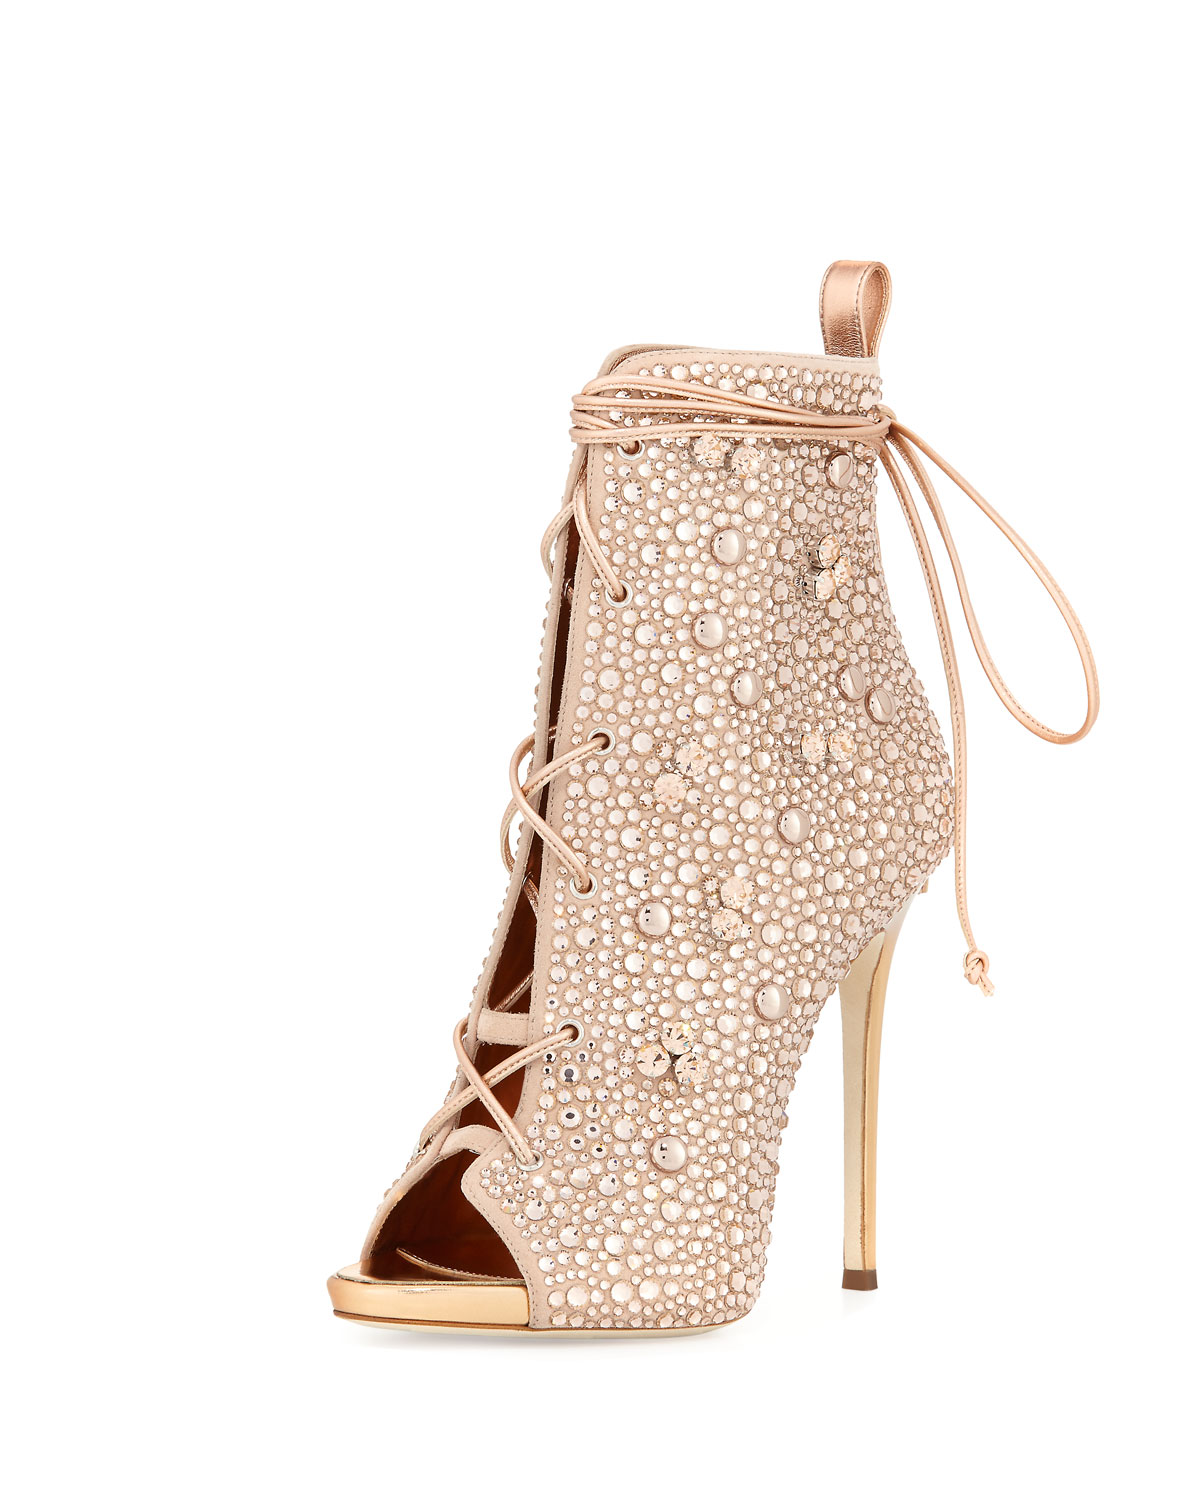 56bb289bc803 Giuseppe Zanotti for Jennifer LopezLynda Crystal Open-Toe 120mm Bootie